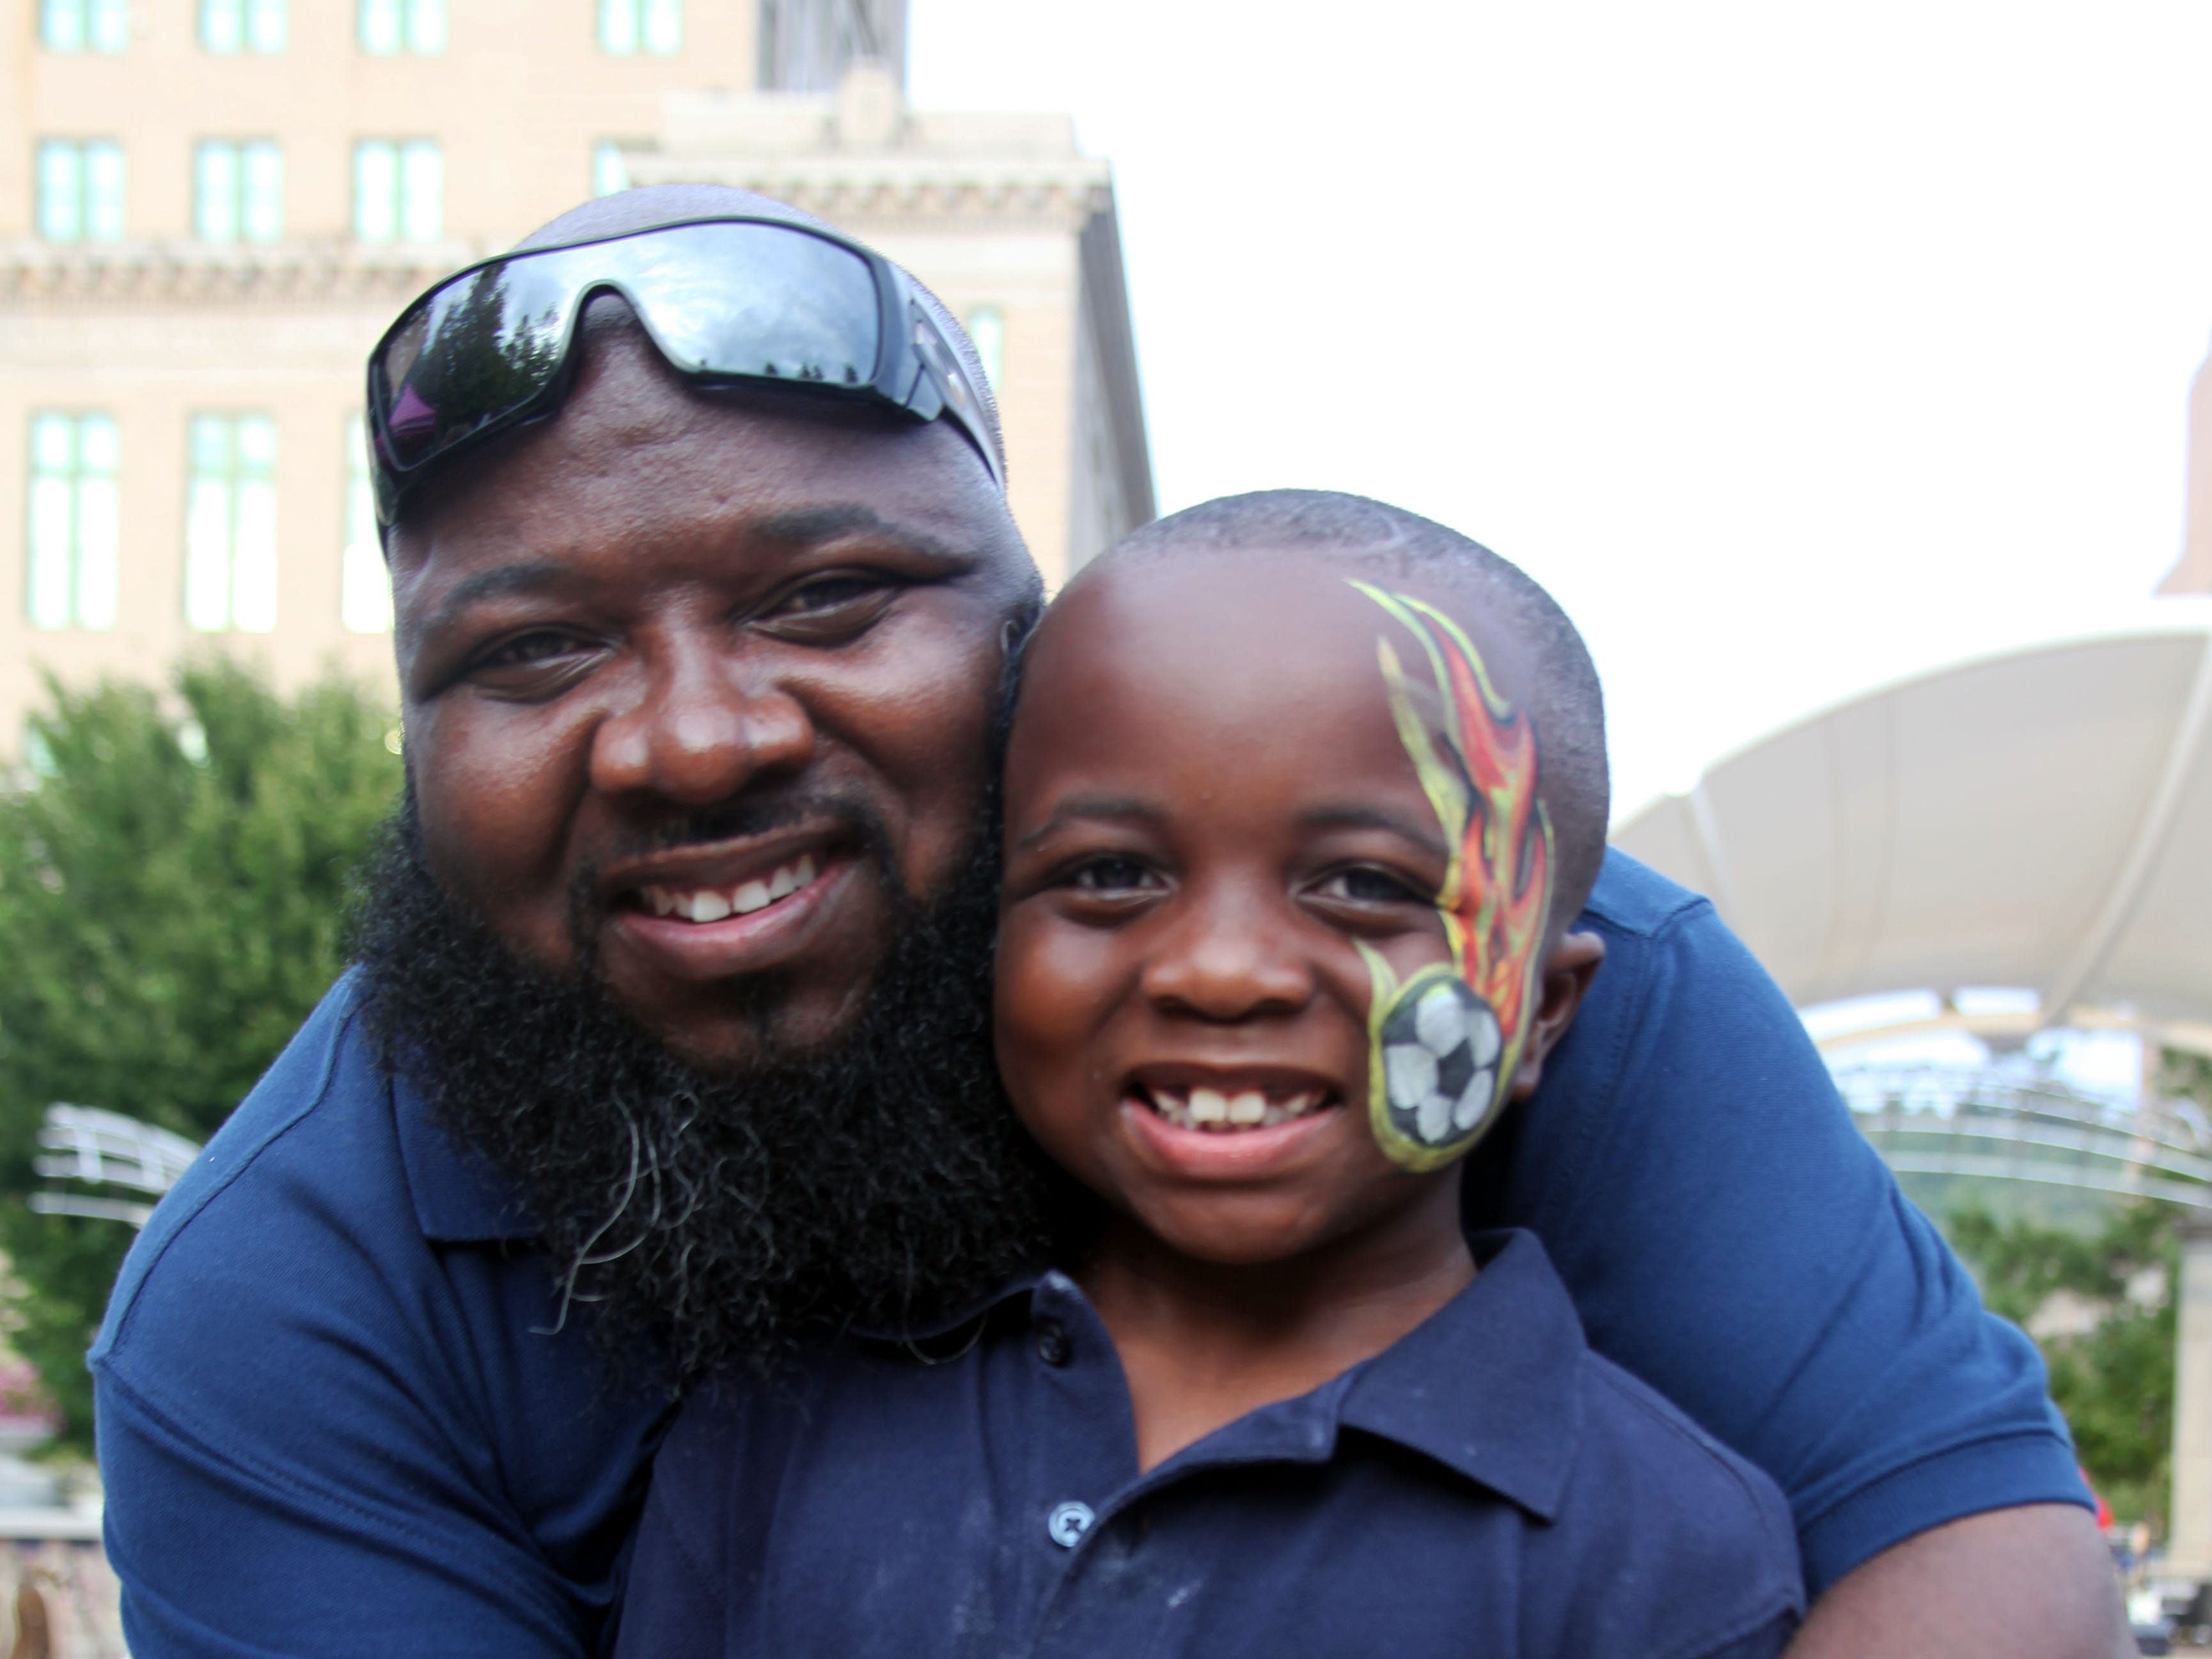 Bo and Derick Bennett enjoy the 2018 Goombay Festival at the Roger McGuire Green in Pack Square Park on Sept. 8, 2018.